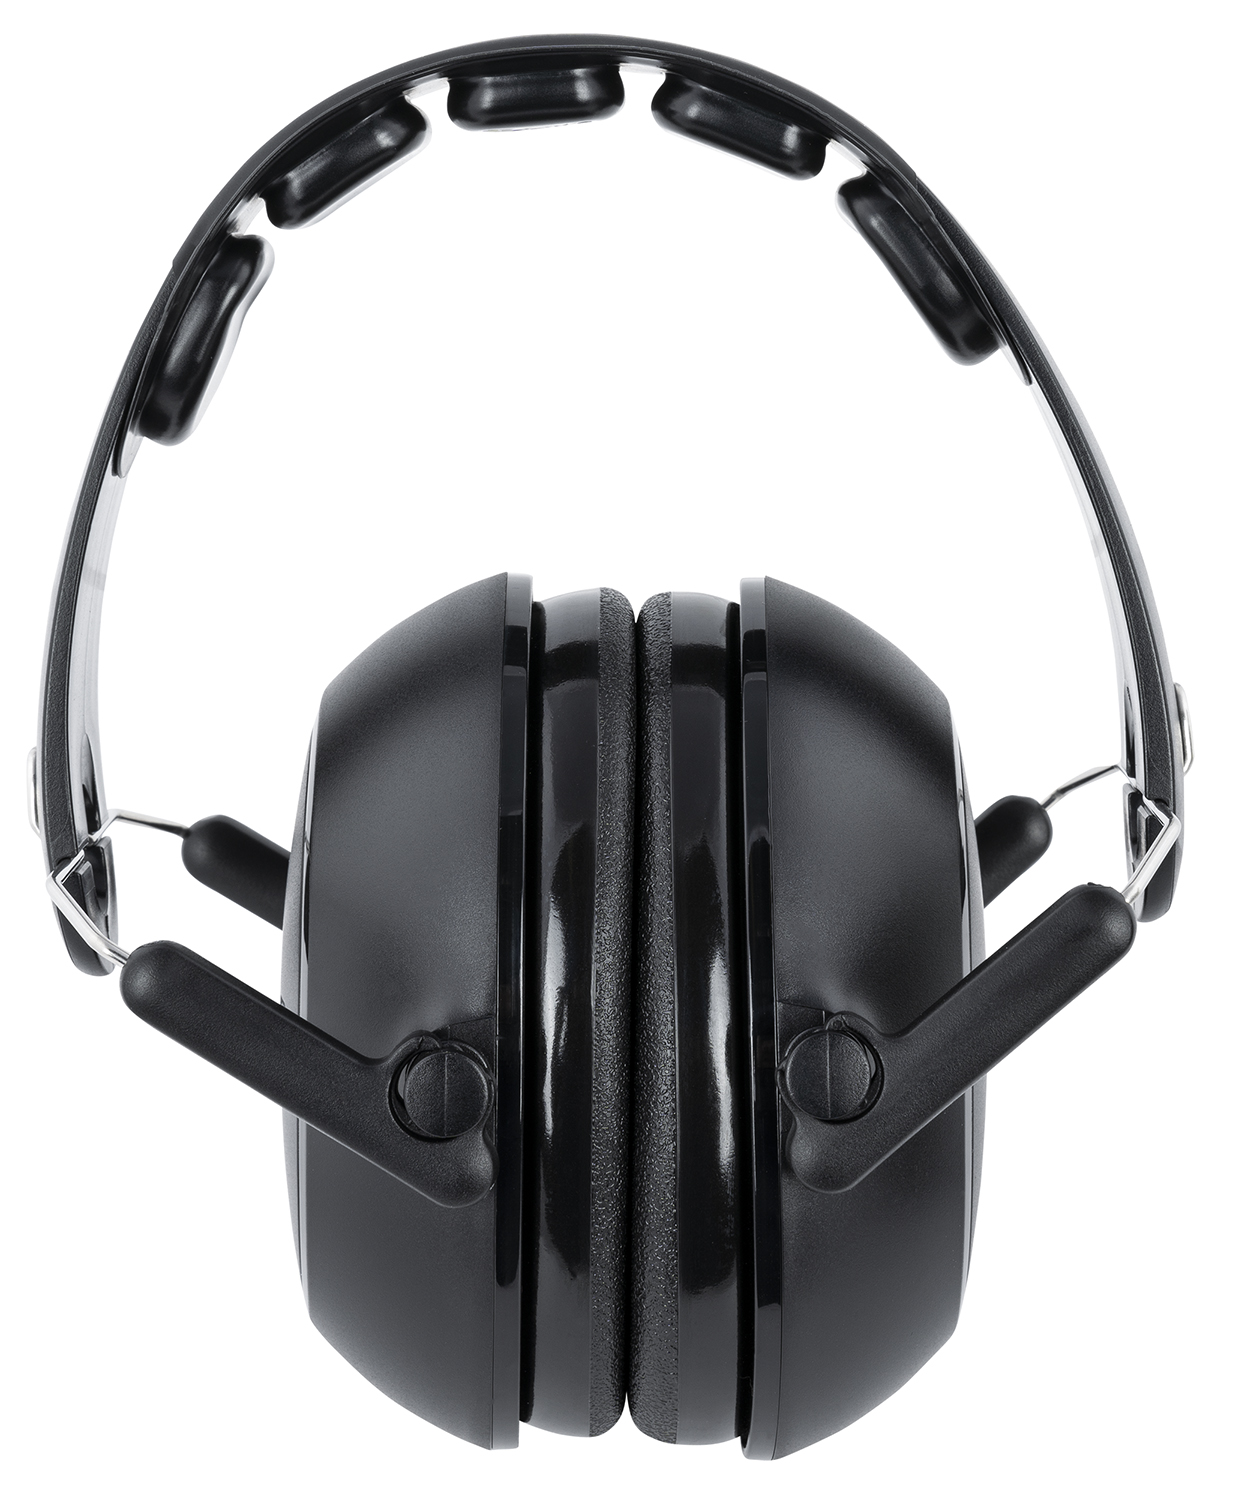 Peltor YTHPEL4DC Sport Hearing Protector 22 dB Over the Head Black Ear Cups with Black Headband for Youth 1 Pair